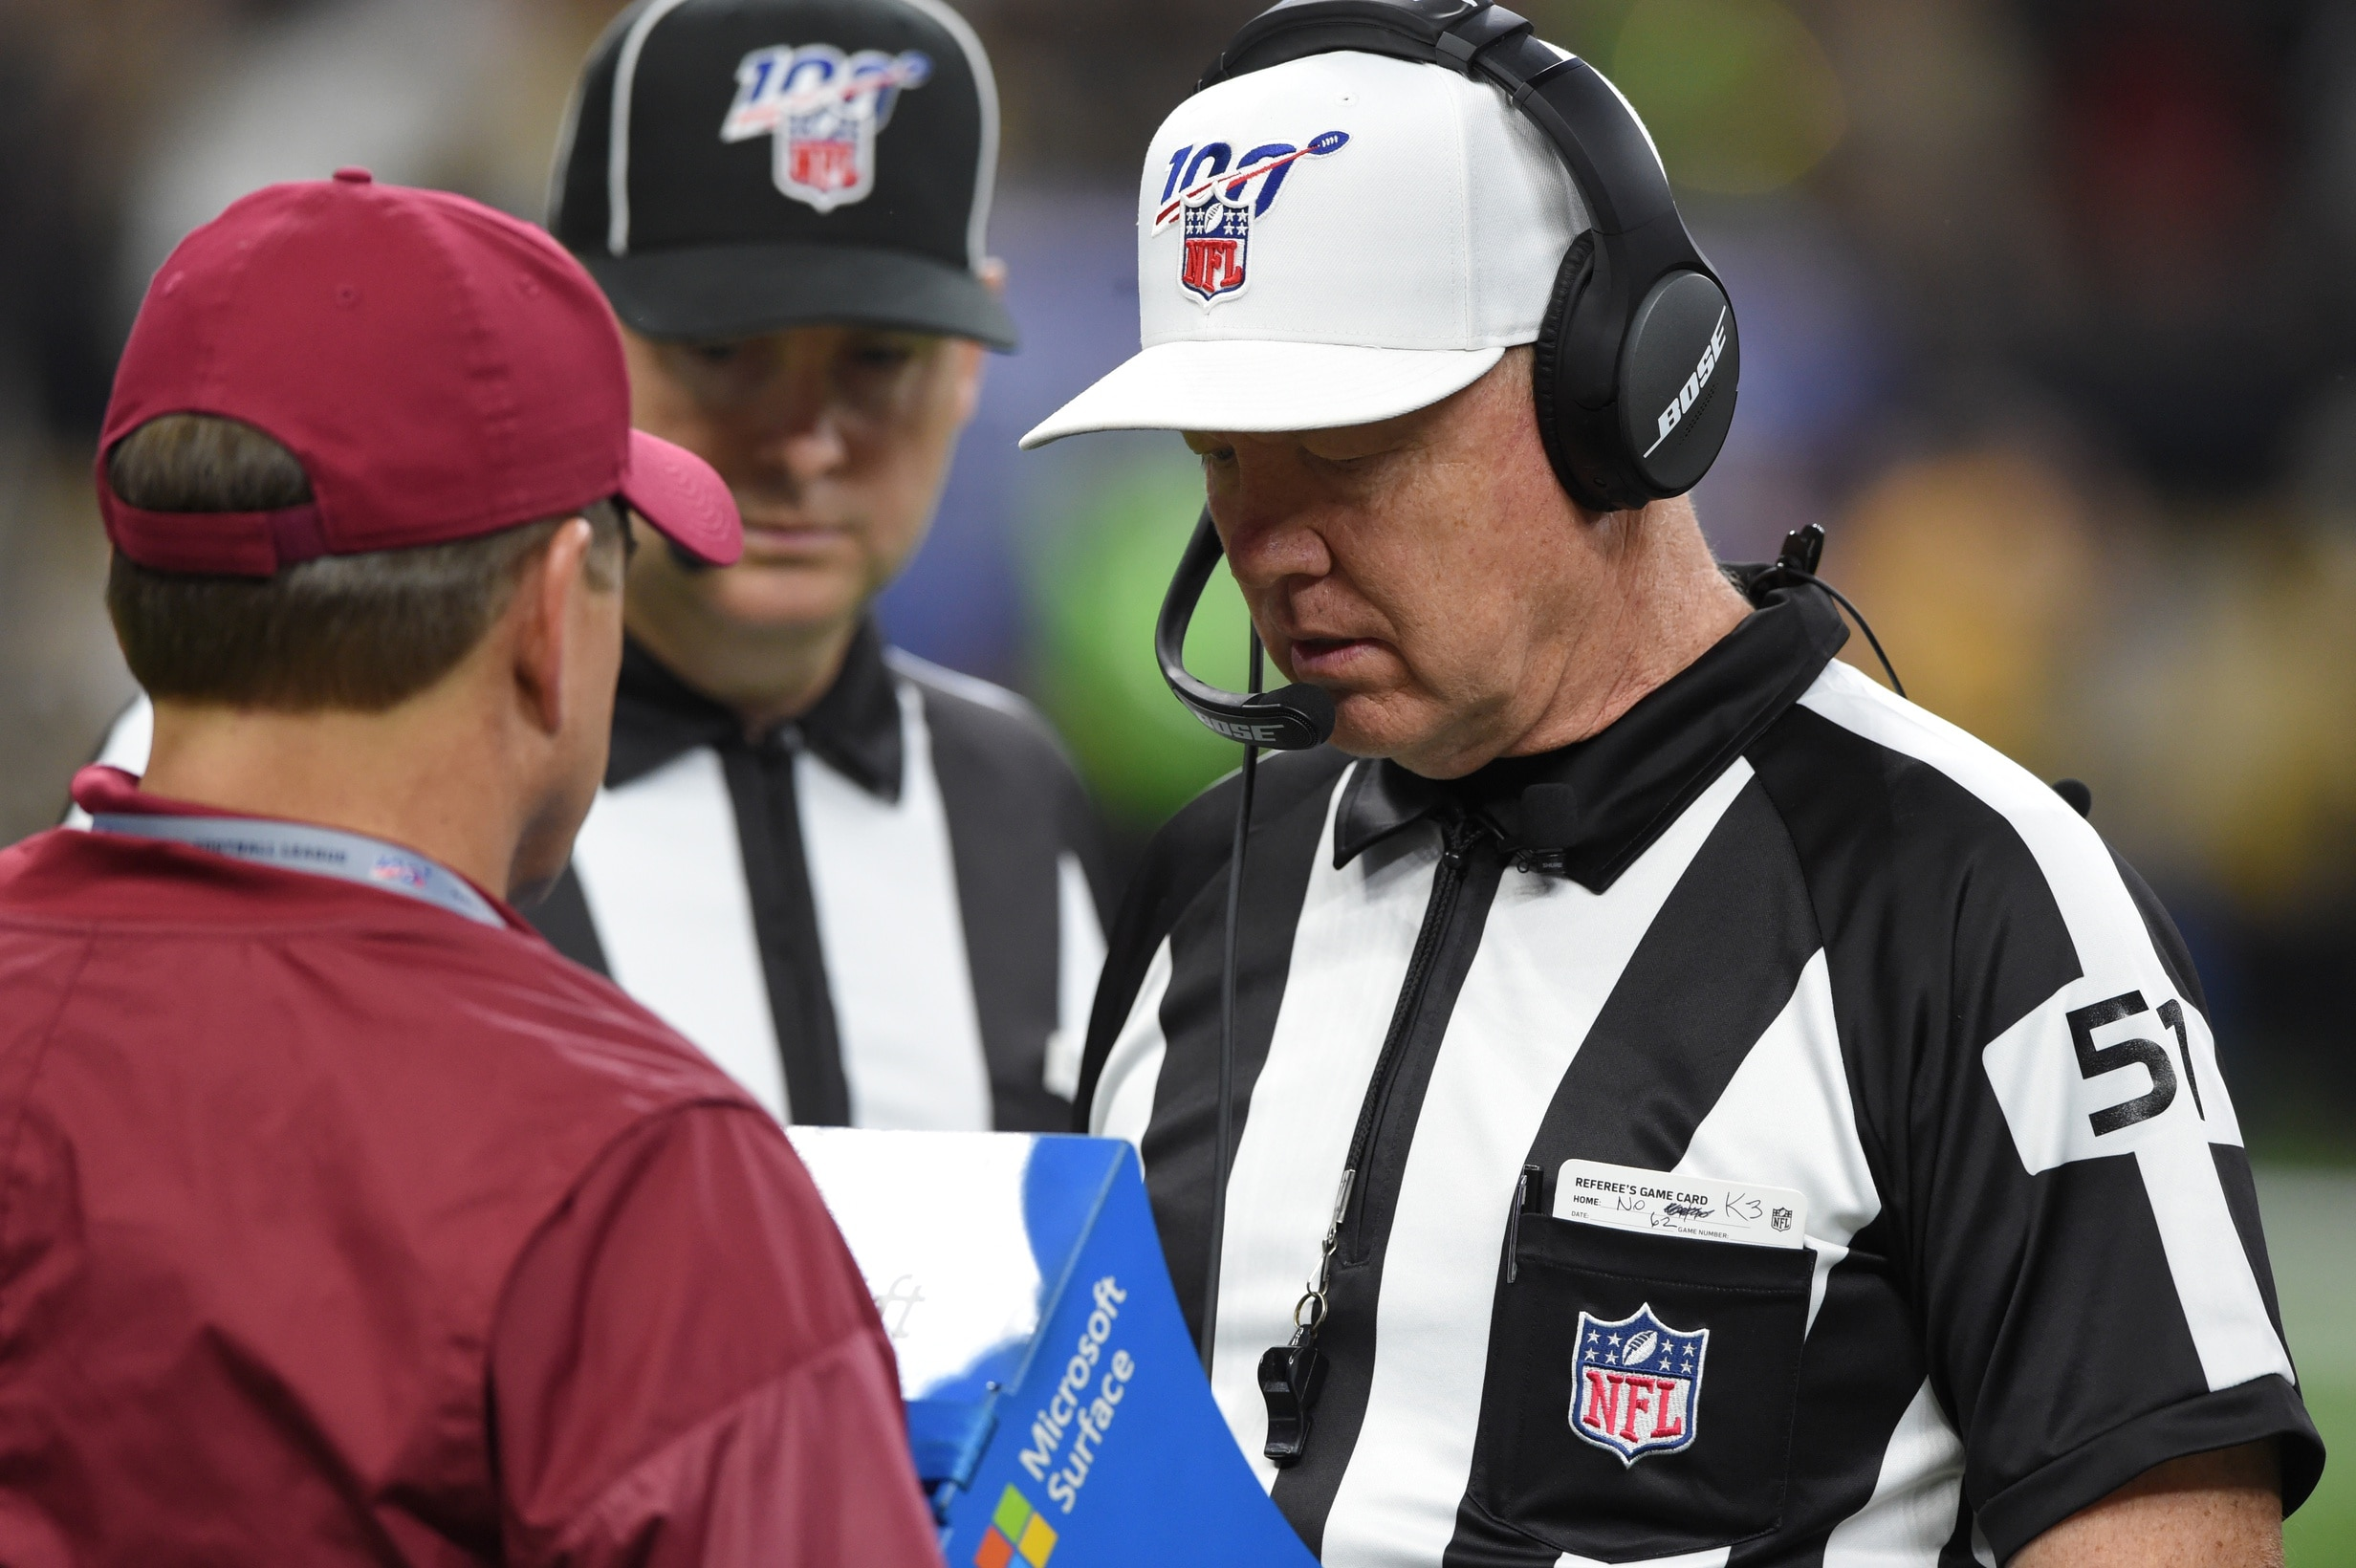 Report: NFL, officials uninterested in use of 'Sky Judge' despite coaches pushing for it